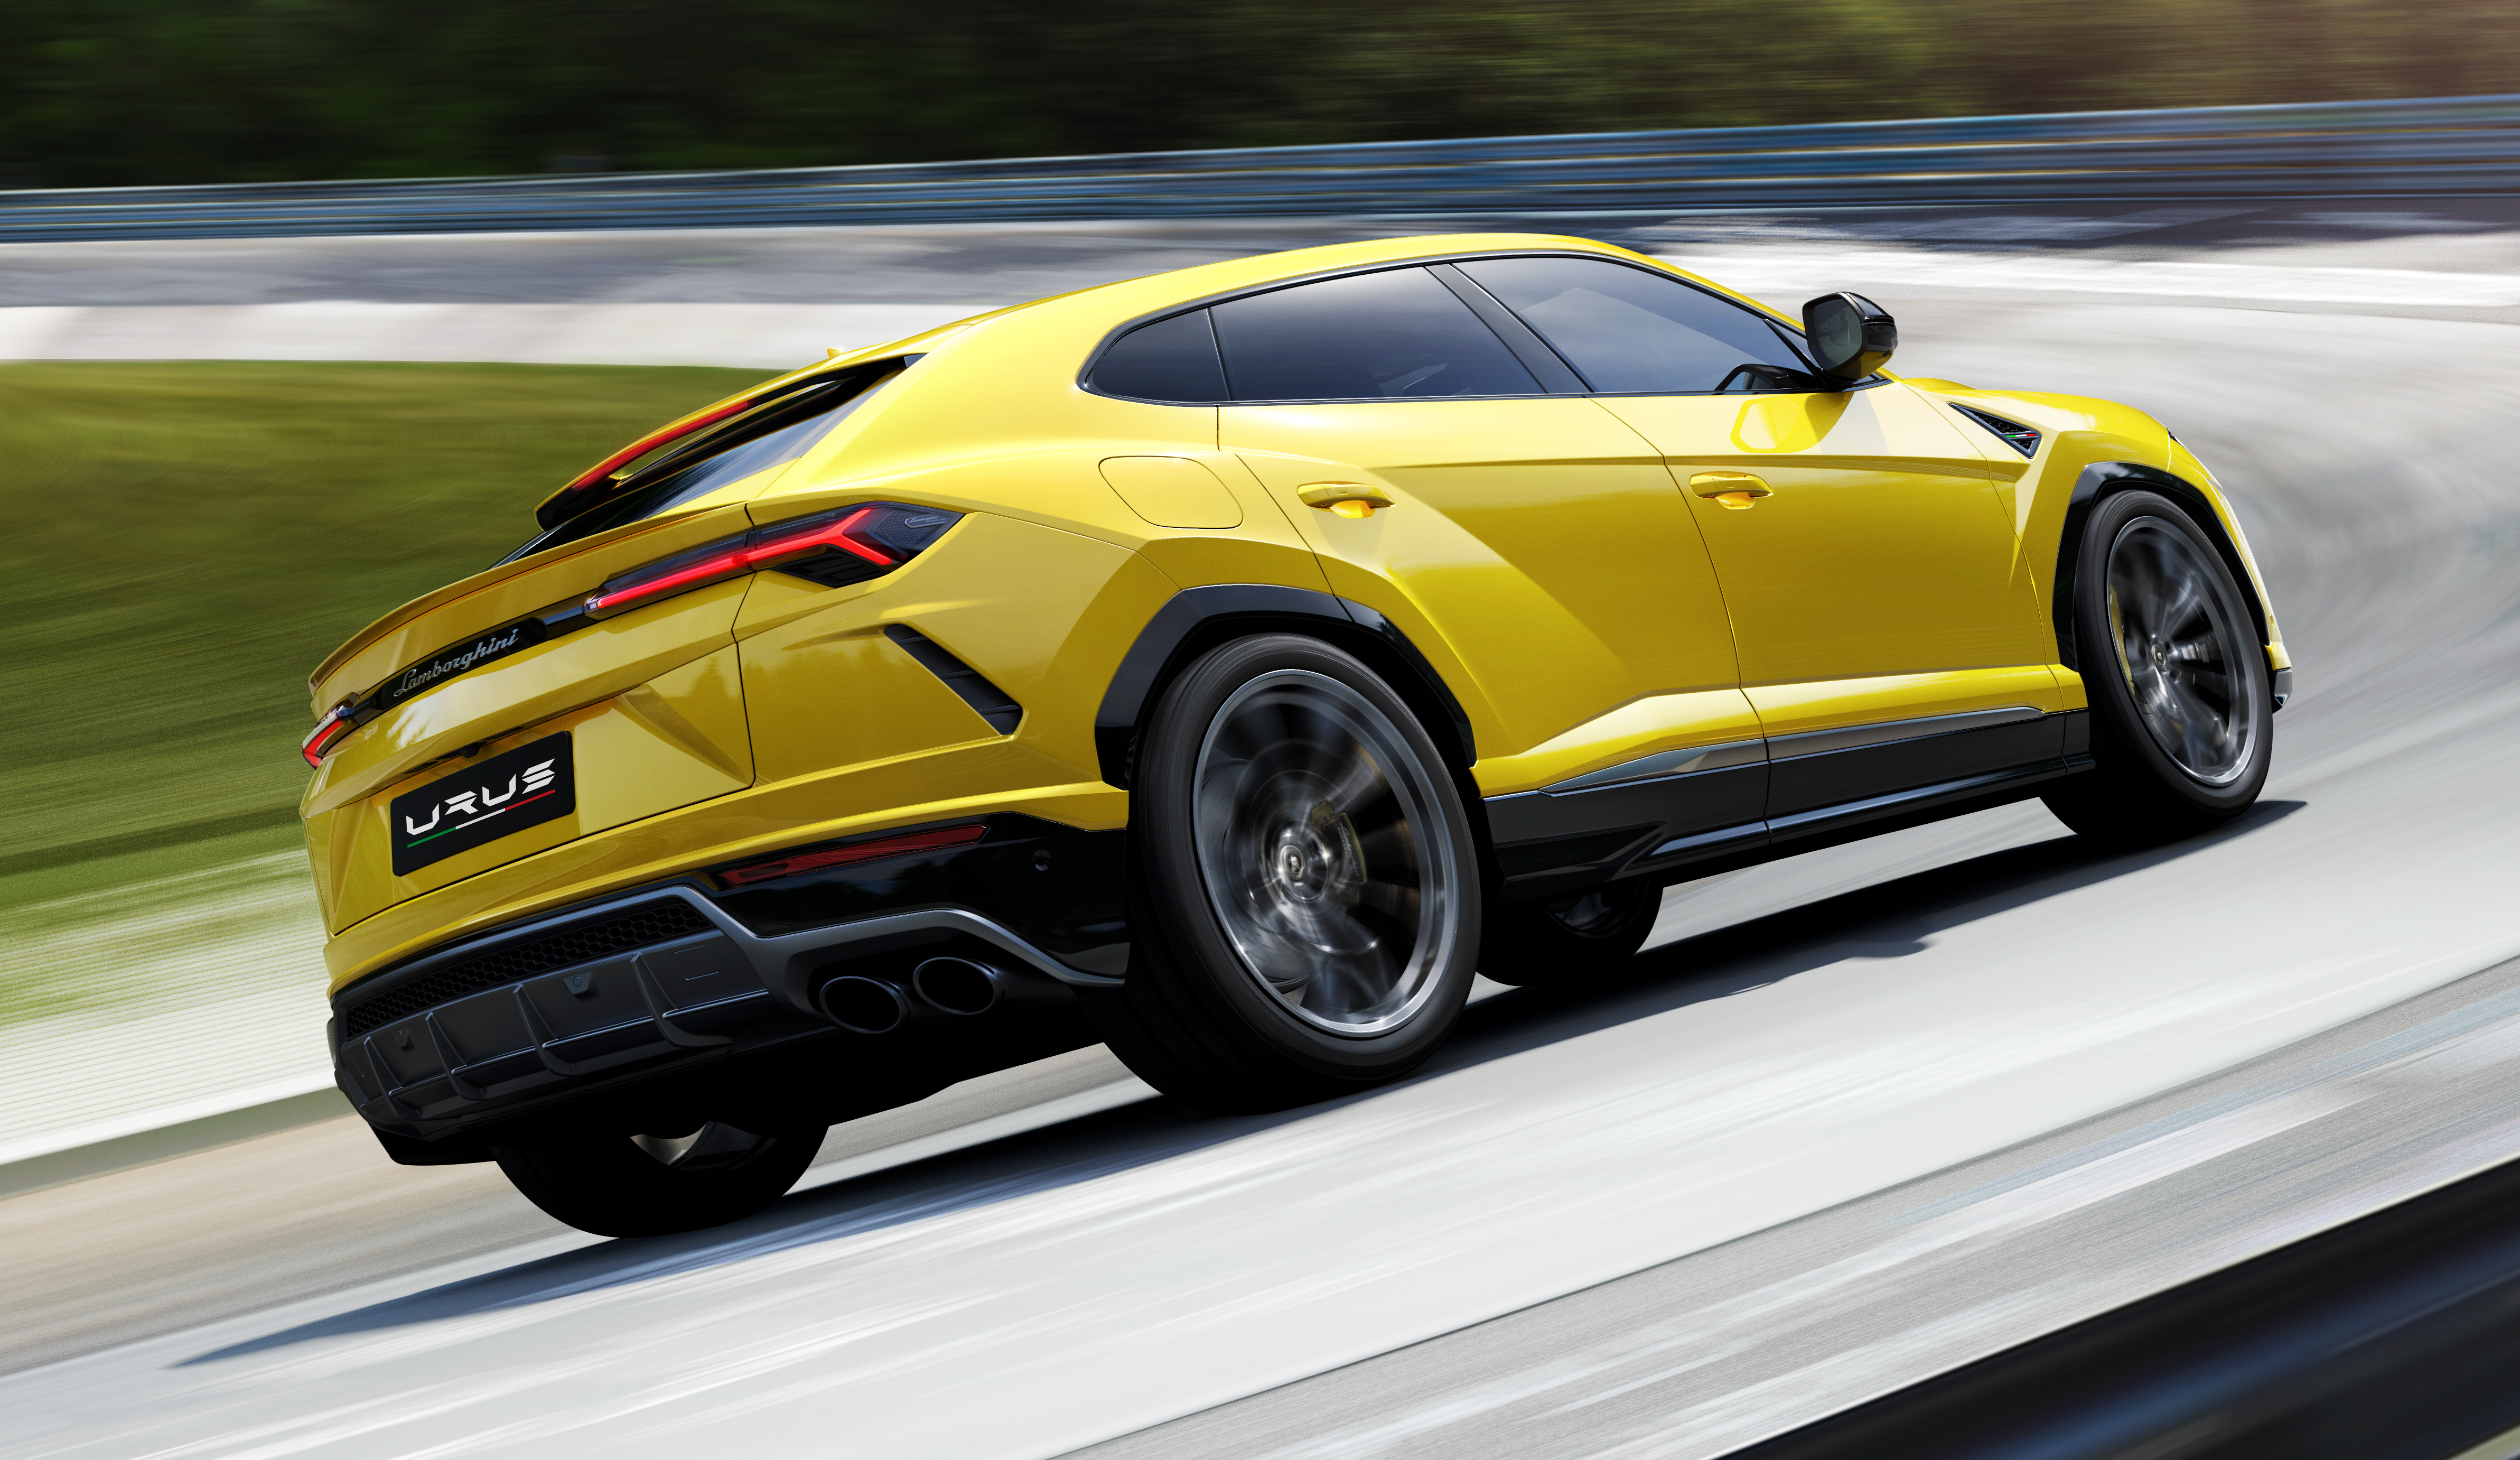 Lamborghini Suv Urus >> Lamborghini Urus – Sant'Agata's 650 PS, 850 Nm SUV makes its official debut, deliveries begin in ...